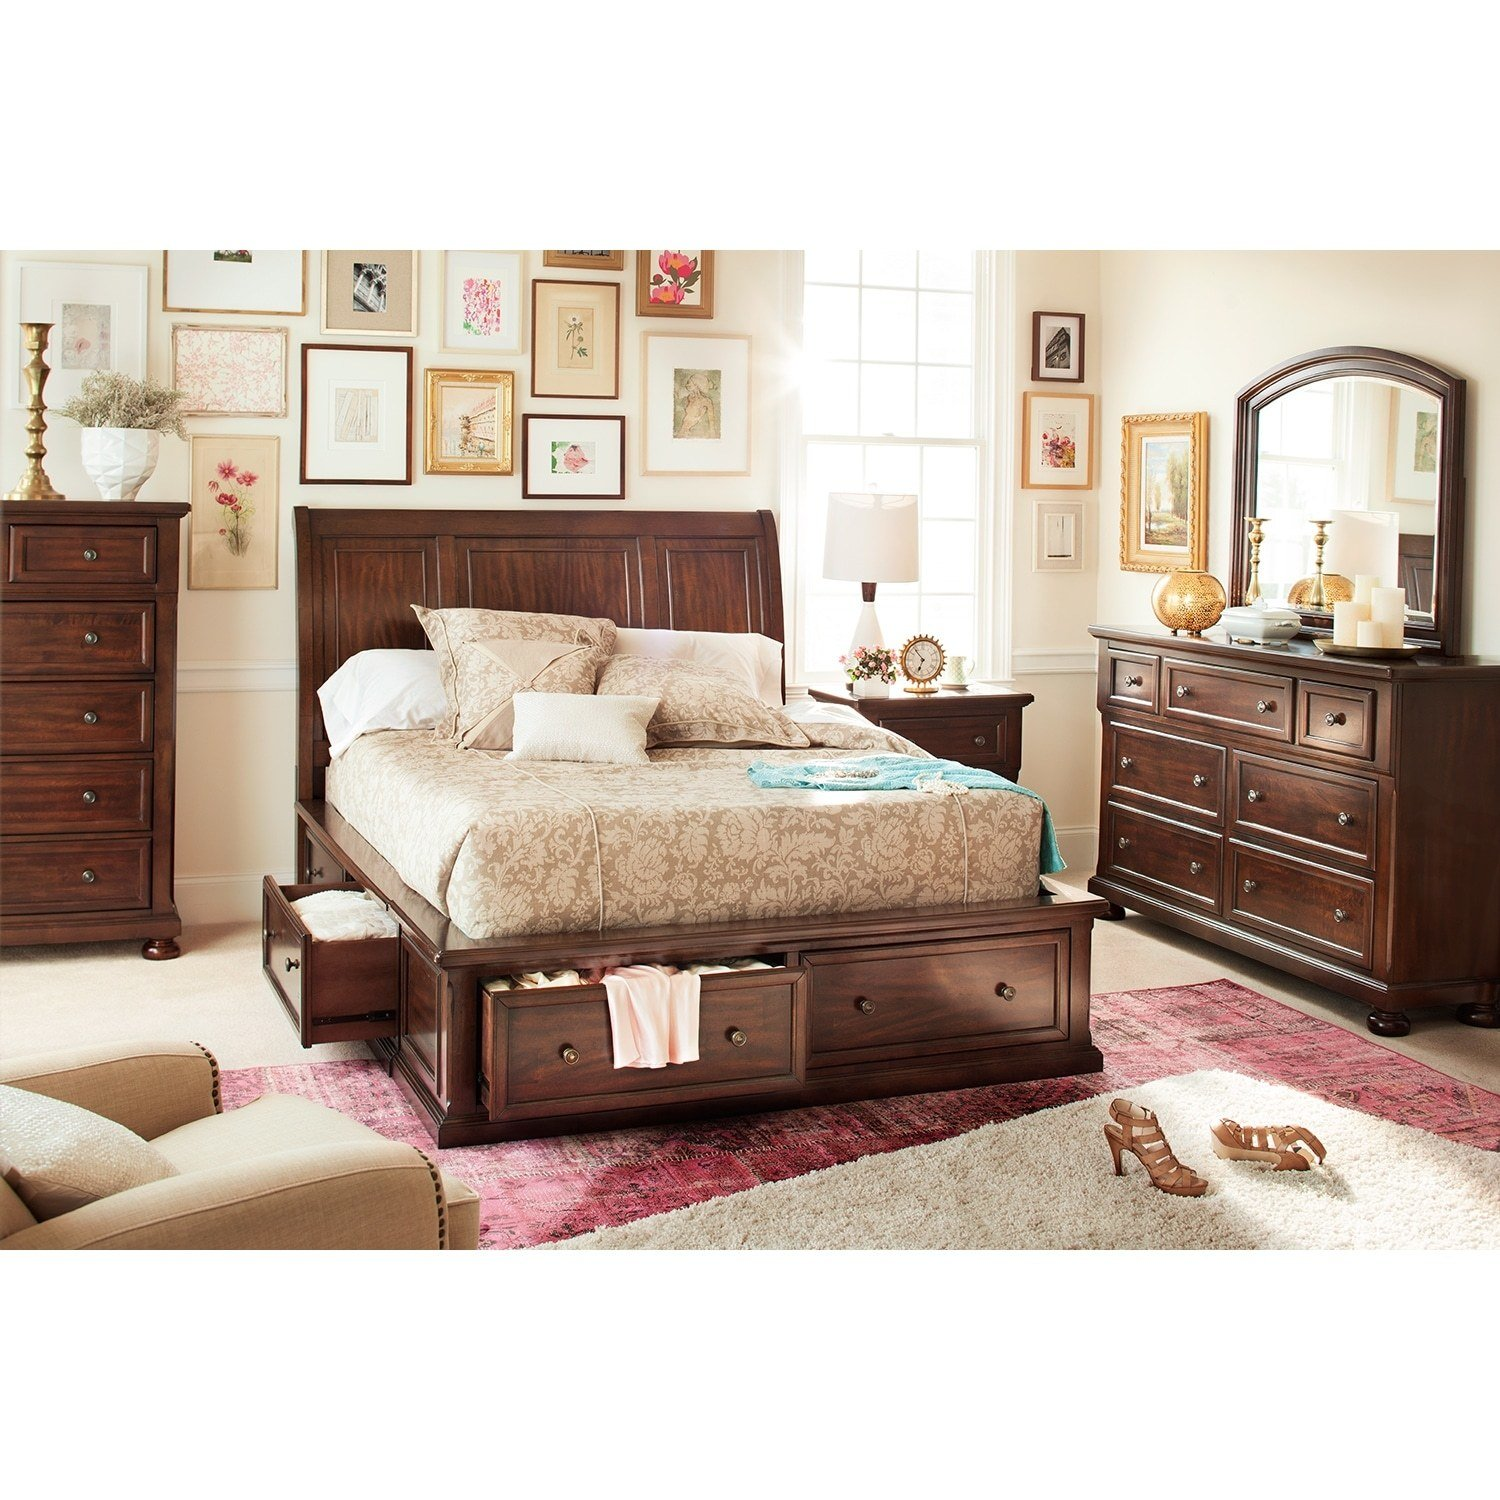 Best Hanover 7 Piece King Storage Bedroom Set Cherry With Pictures